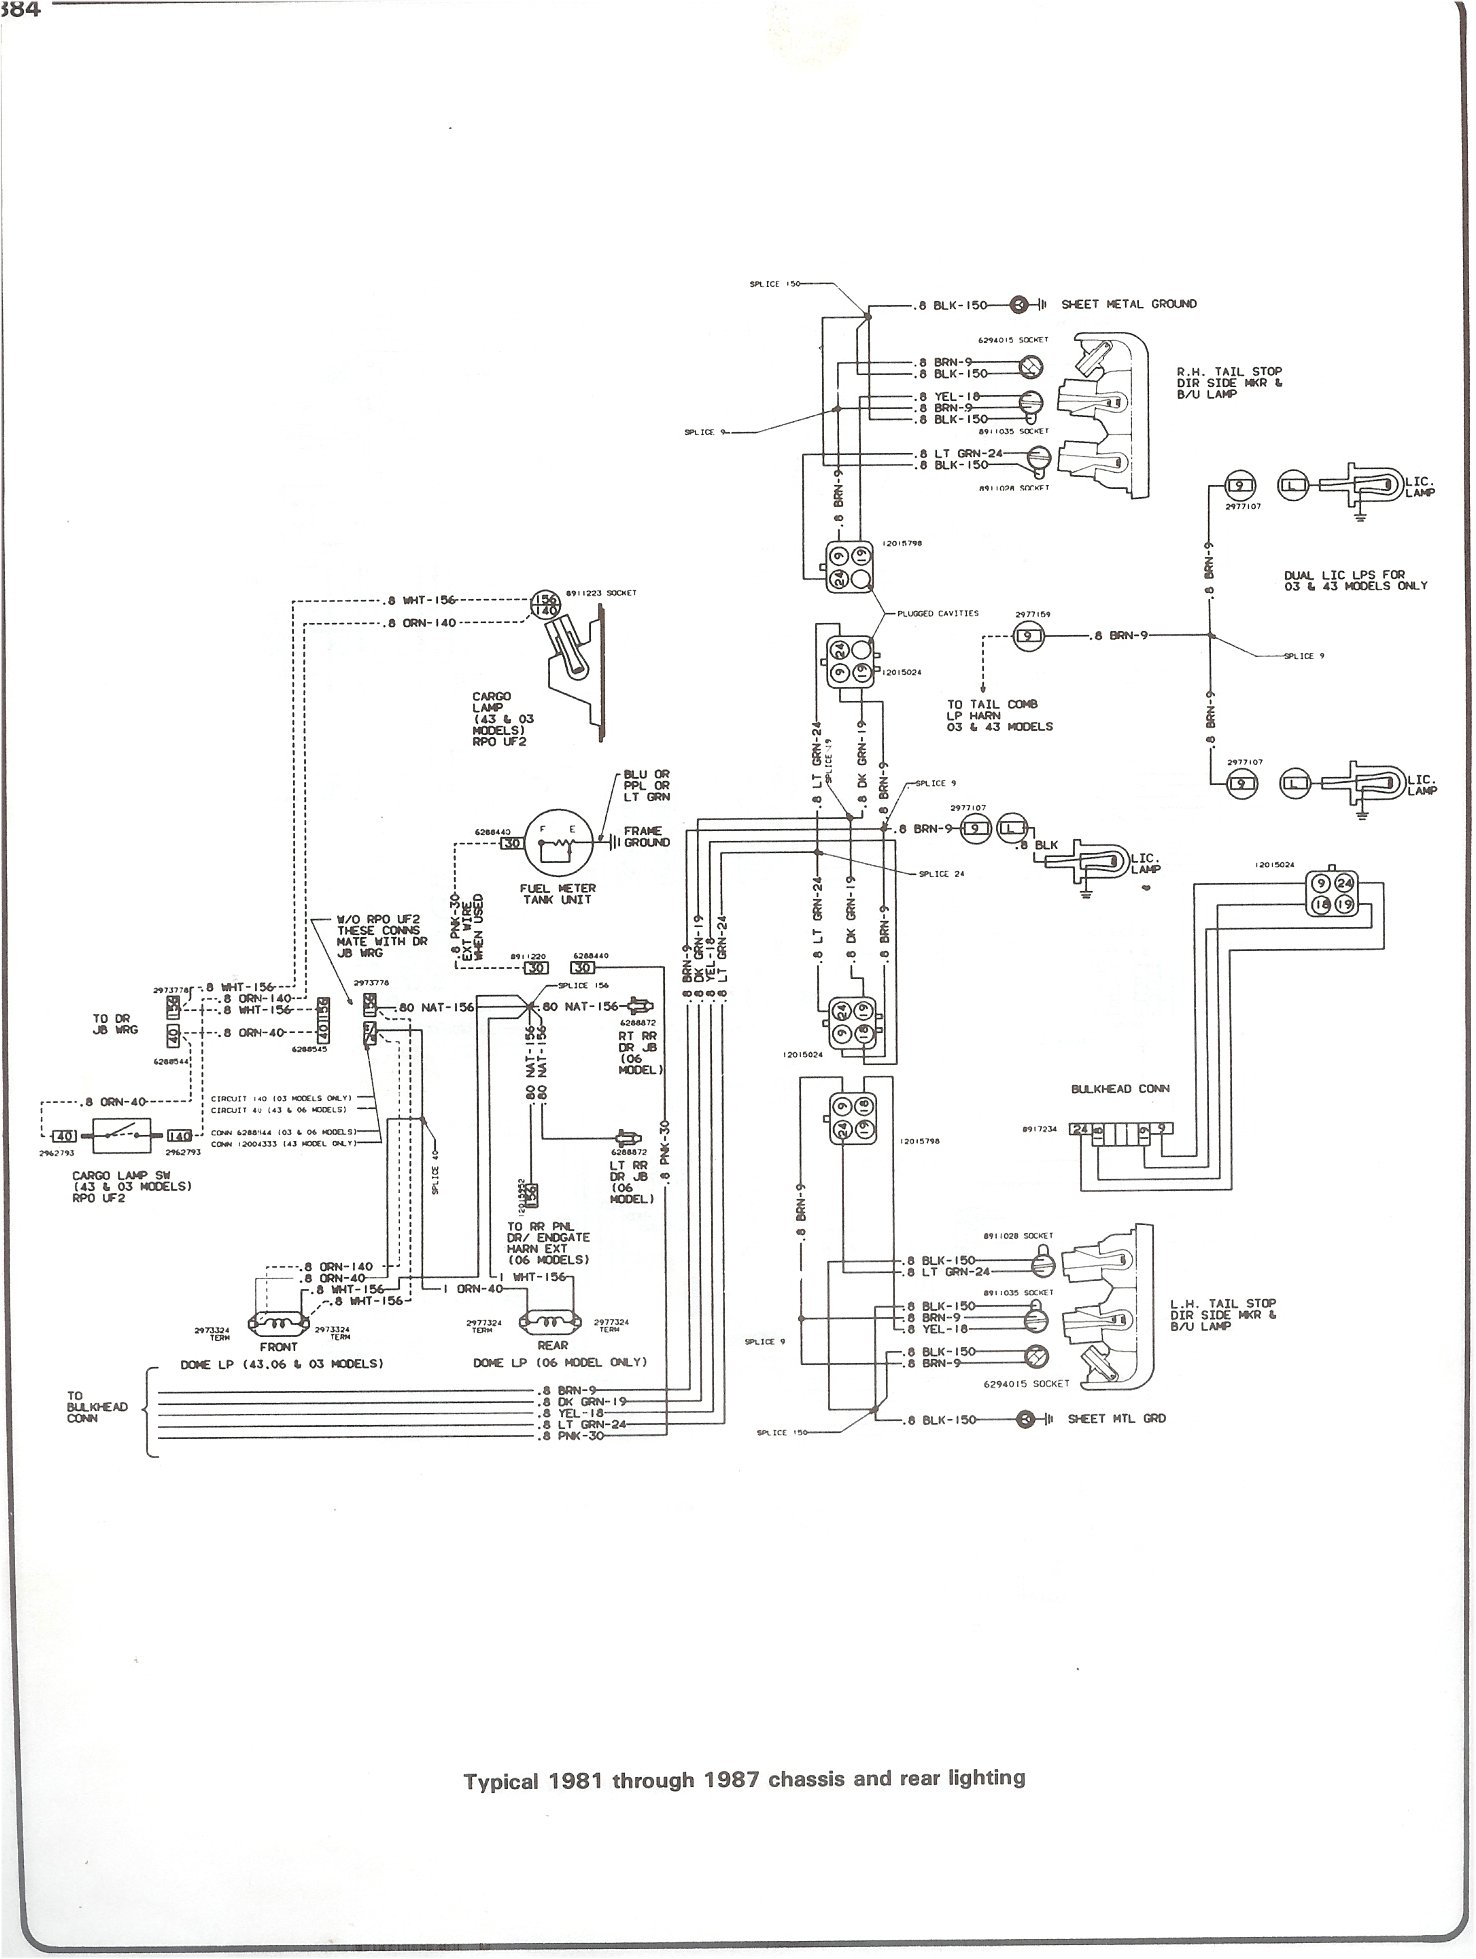 chevy p wiring diagram complete 73 87 wiring diagrams 81 87 i6 engine compartment atilde130acircmiddot 81 87 v8 engine